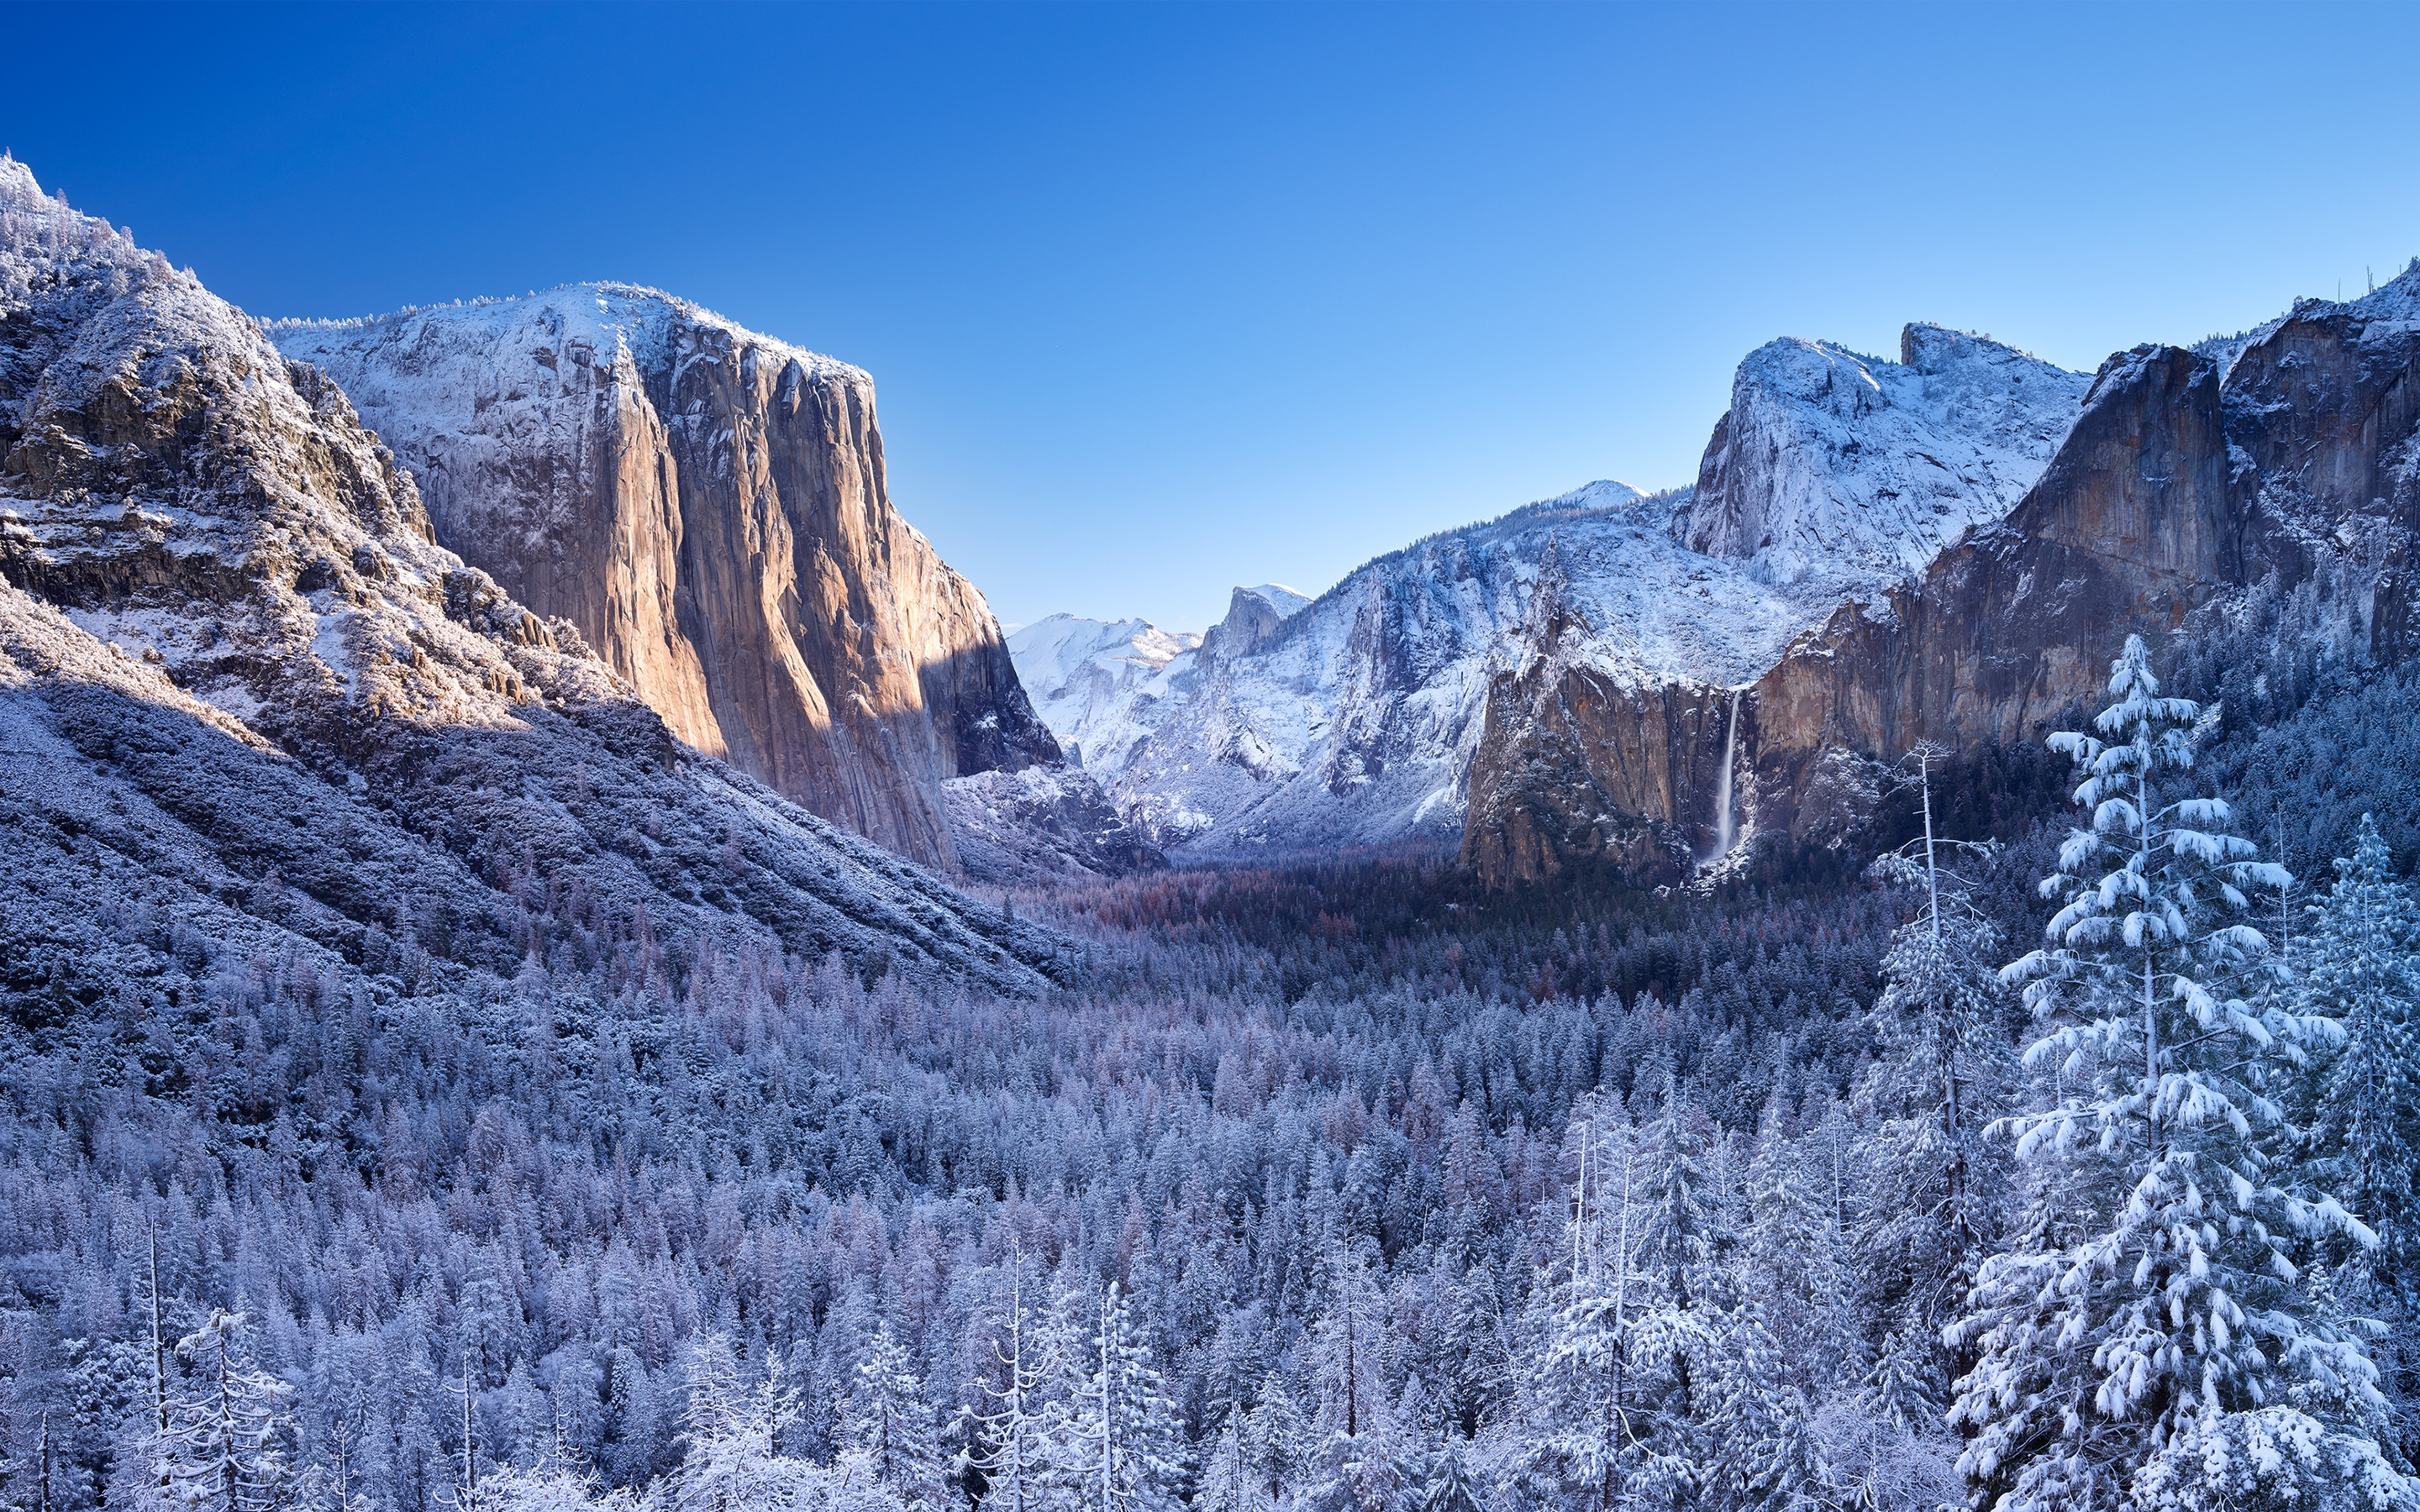 4k Hdr Wallpaper Iphone X Download 2880x1800 Yosemite National Park Trees Snow